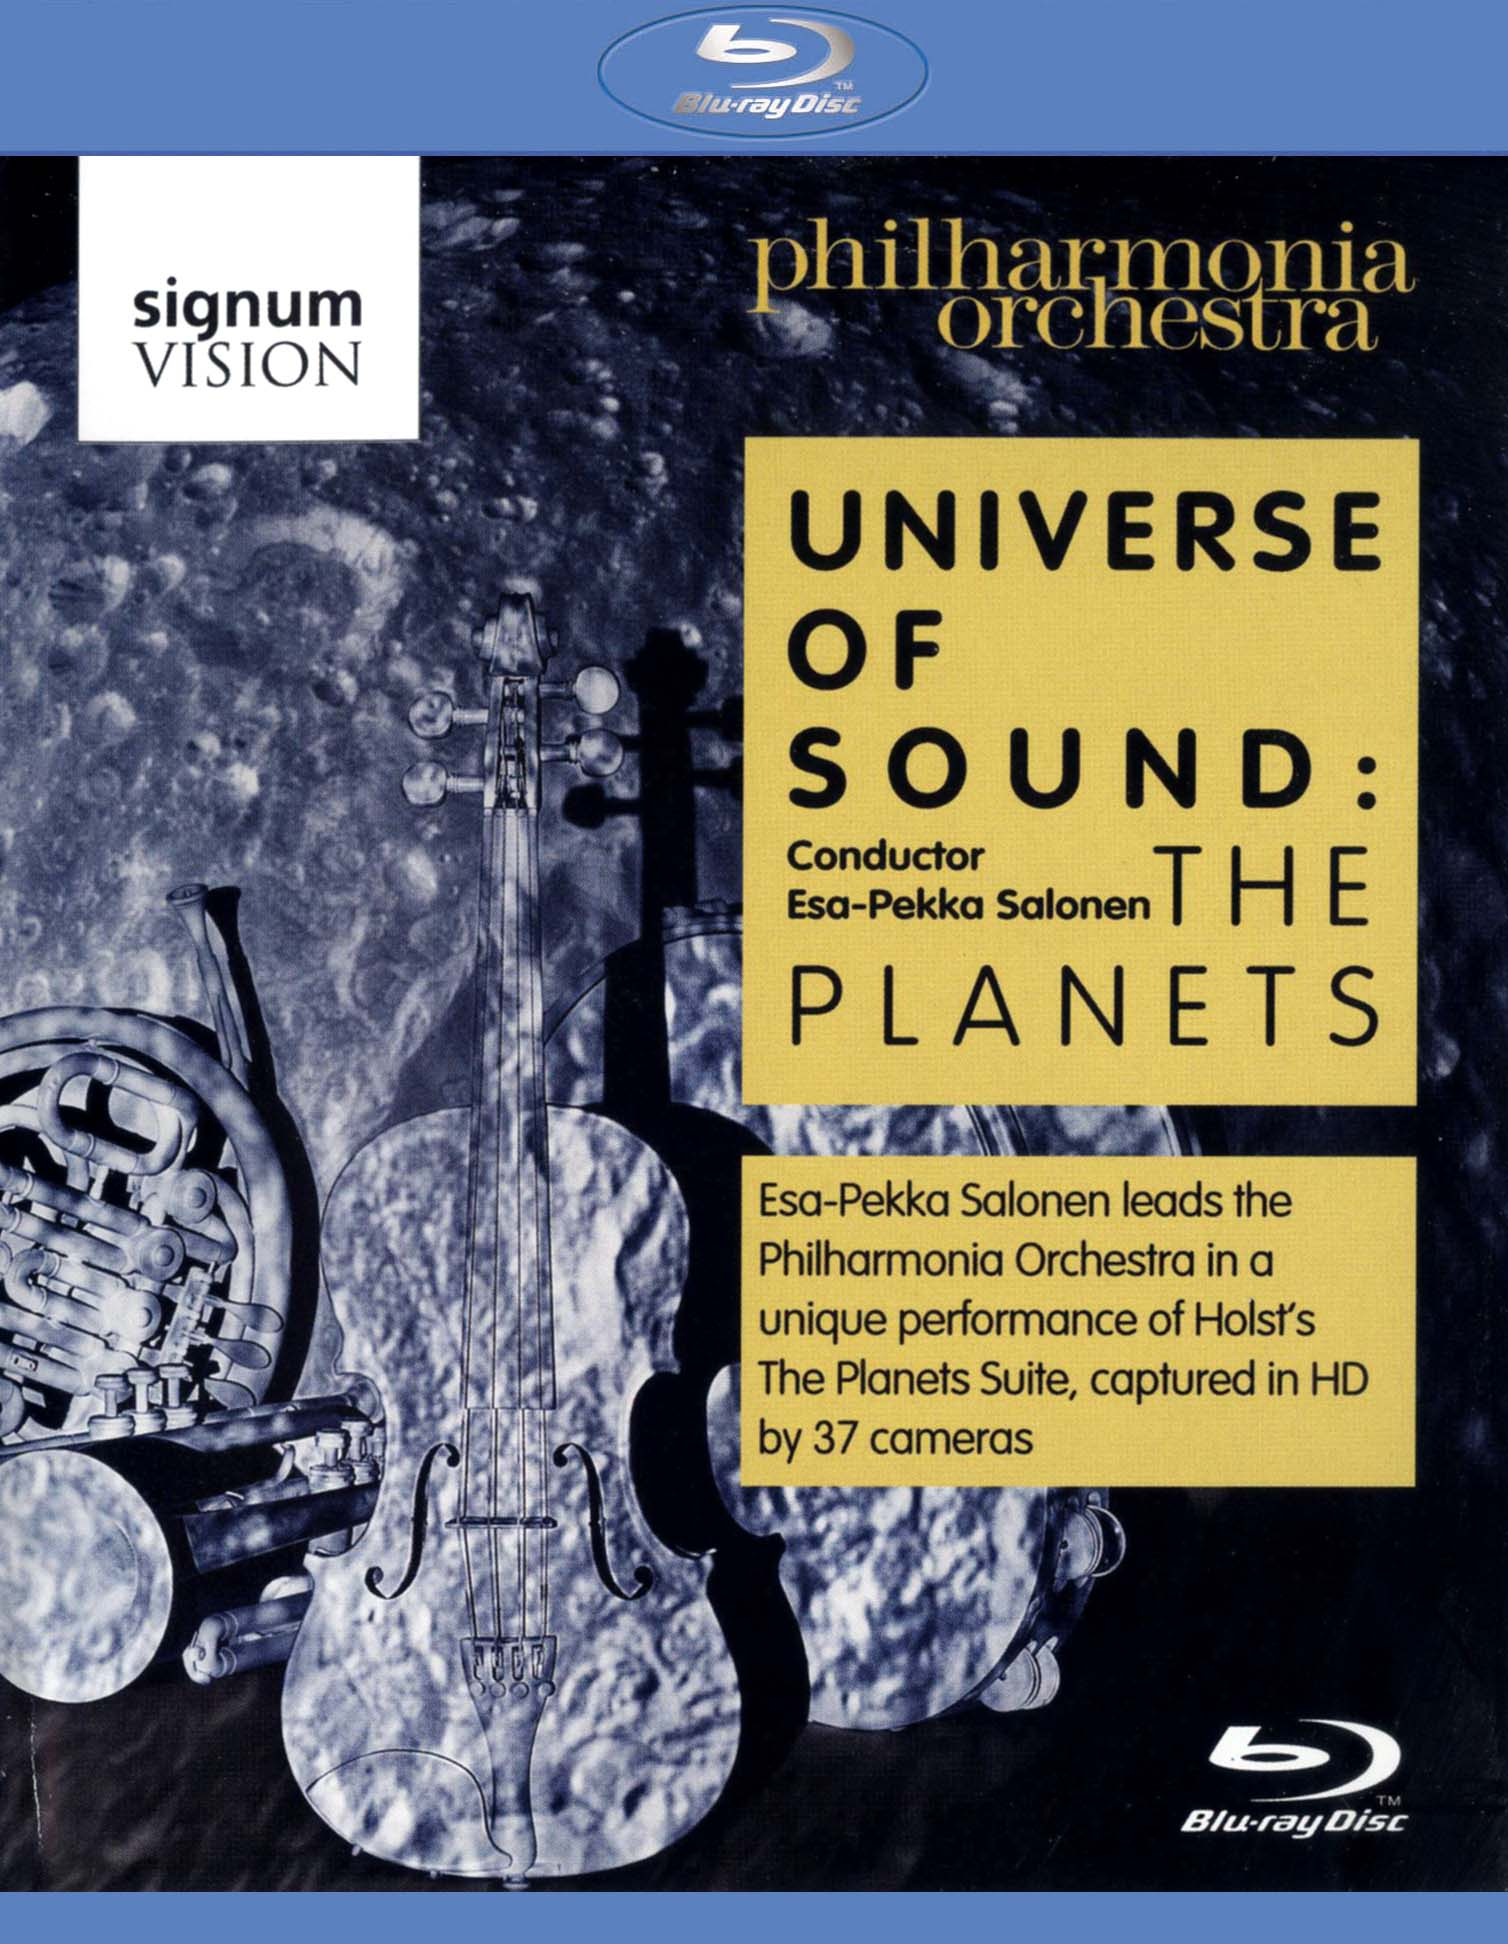 Philharmonia Orchestra: Universe of Sound - The Planets